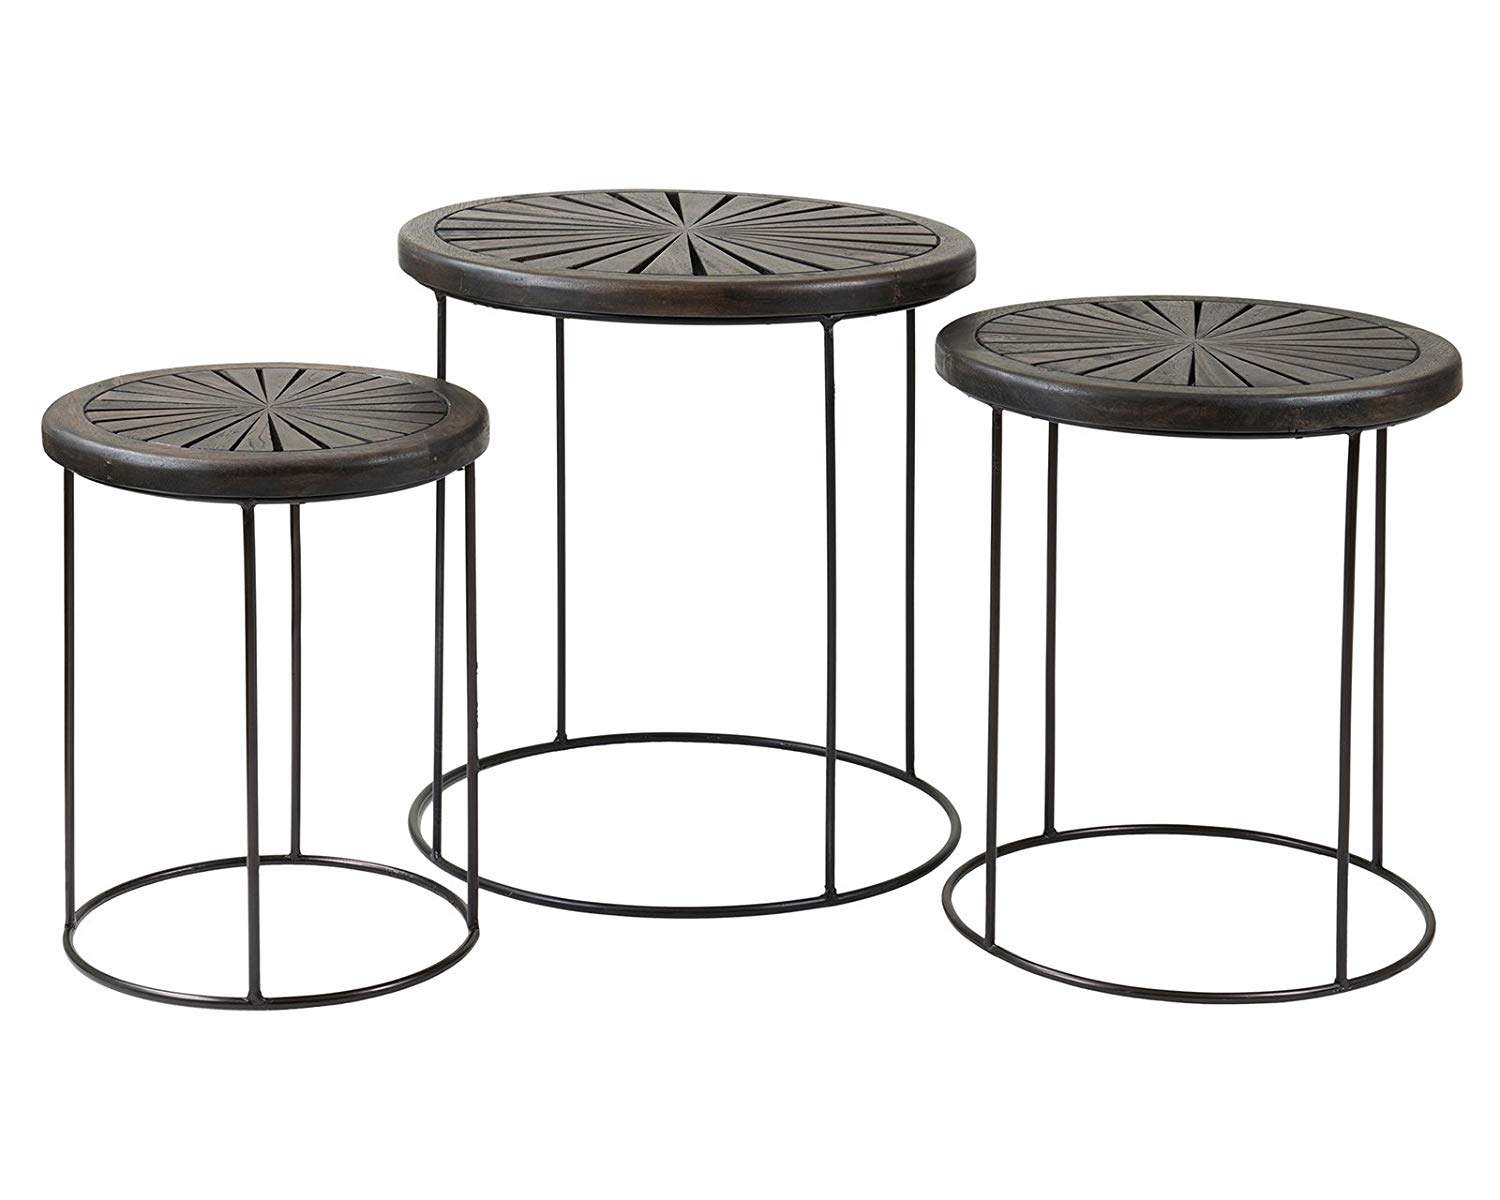 east main bartlett brown round mango wood accent table nesting kitchen dining white dresser marble box coffee gold metal and glass cute lamps for bedroom seater covers outdoor